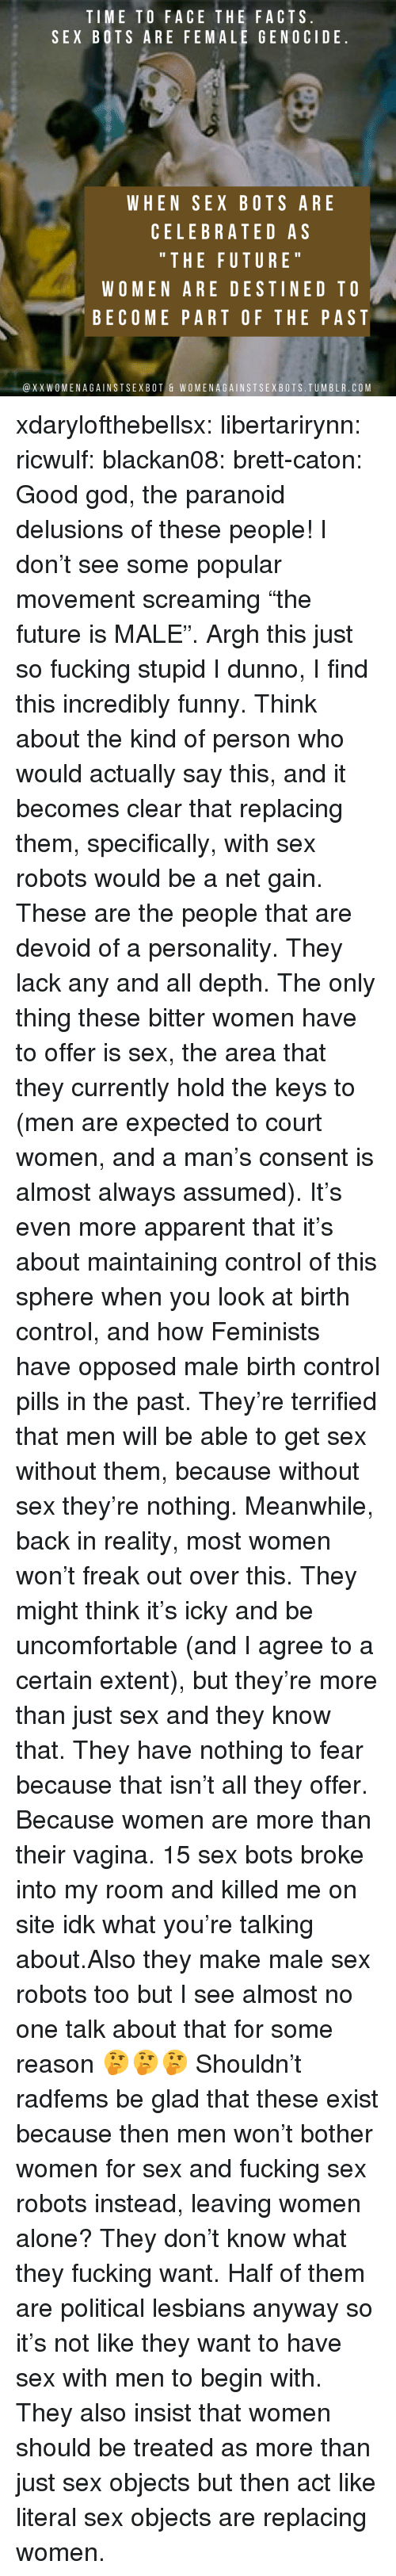 """Being Alone, Facts, and Fucking: TIME TO FACE THE FACTS  SEX BOTS ARE FEMALE GENOCIDE  WHEN SEX BOTS ARE  CELEBRATED AS  """" THE FUTURE  WOMEN ARE DESTINED TO  BECOME PART OF THE PAST  @XXWOMENAGAINSTSEXBOT & WOMENAGAINSTSEXBOTS.TUMBLR.COM xdarylofthebellsx:  libertarirynn:  ricwulf:  blackan08:   brett-caton: Good god, the paranoid delusions of these people! I don't see some popular movement screaming """"the future is MALE"""". Argh this just so fucking stupid   I dunno, I find this incredibly funny. Think about the kind of person who would actually say this, and it becomes clear that replacing them, specifically, with sex robots would be a net gain. These are the people that are devoid of a personality. They lack any and all depth. The only thing these bitter women have to offer is sex, the area that they currently hold the keys to (men are expected to court women, and a man's consent is almost always assumed). It's even more apparent that it's about maintaining control of this sphere when you look at birth control, and how Feminists have opposed male birth control pills in the past.  They're terrified that men will be able to get sex without them, because without sex they're nothing. Meanwhile, back in reality, most women won't freak out over this. They might think it's icky and be uncomfortable (and I agree to a certain extent), but they're more than just sex and they know that. They have nothing to fear because that isn't all they offer. Because women are more than their vagina.   15 sex bots broke into my room and killed me on site idk what you're talking about.Also they make male sex robots too but I see almost no one talk about that for some reason 🤔🤔🤔  Shouldn't radfems be glad that these exist because then men won't bother women for sex and fucking sex robots instead, leaving women alone?   They don't know what they fucking want. Half of them are political lesbians anyway so it's not like they want to have sex with men to begin with. They also insist that women s"""